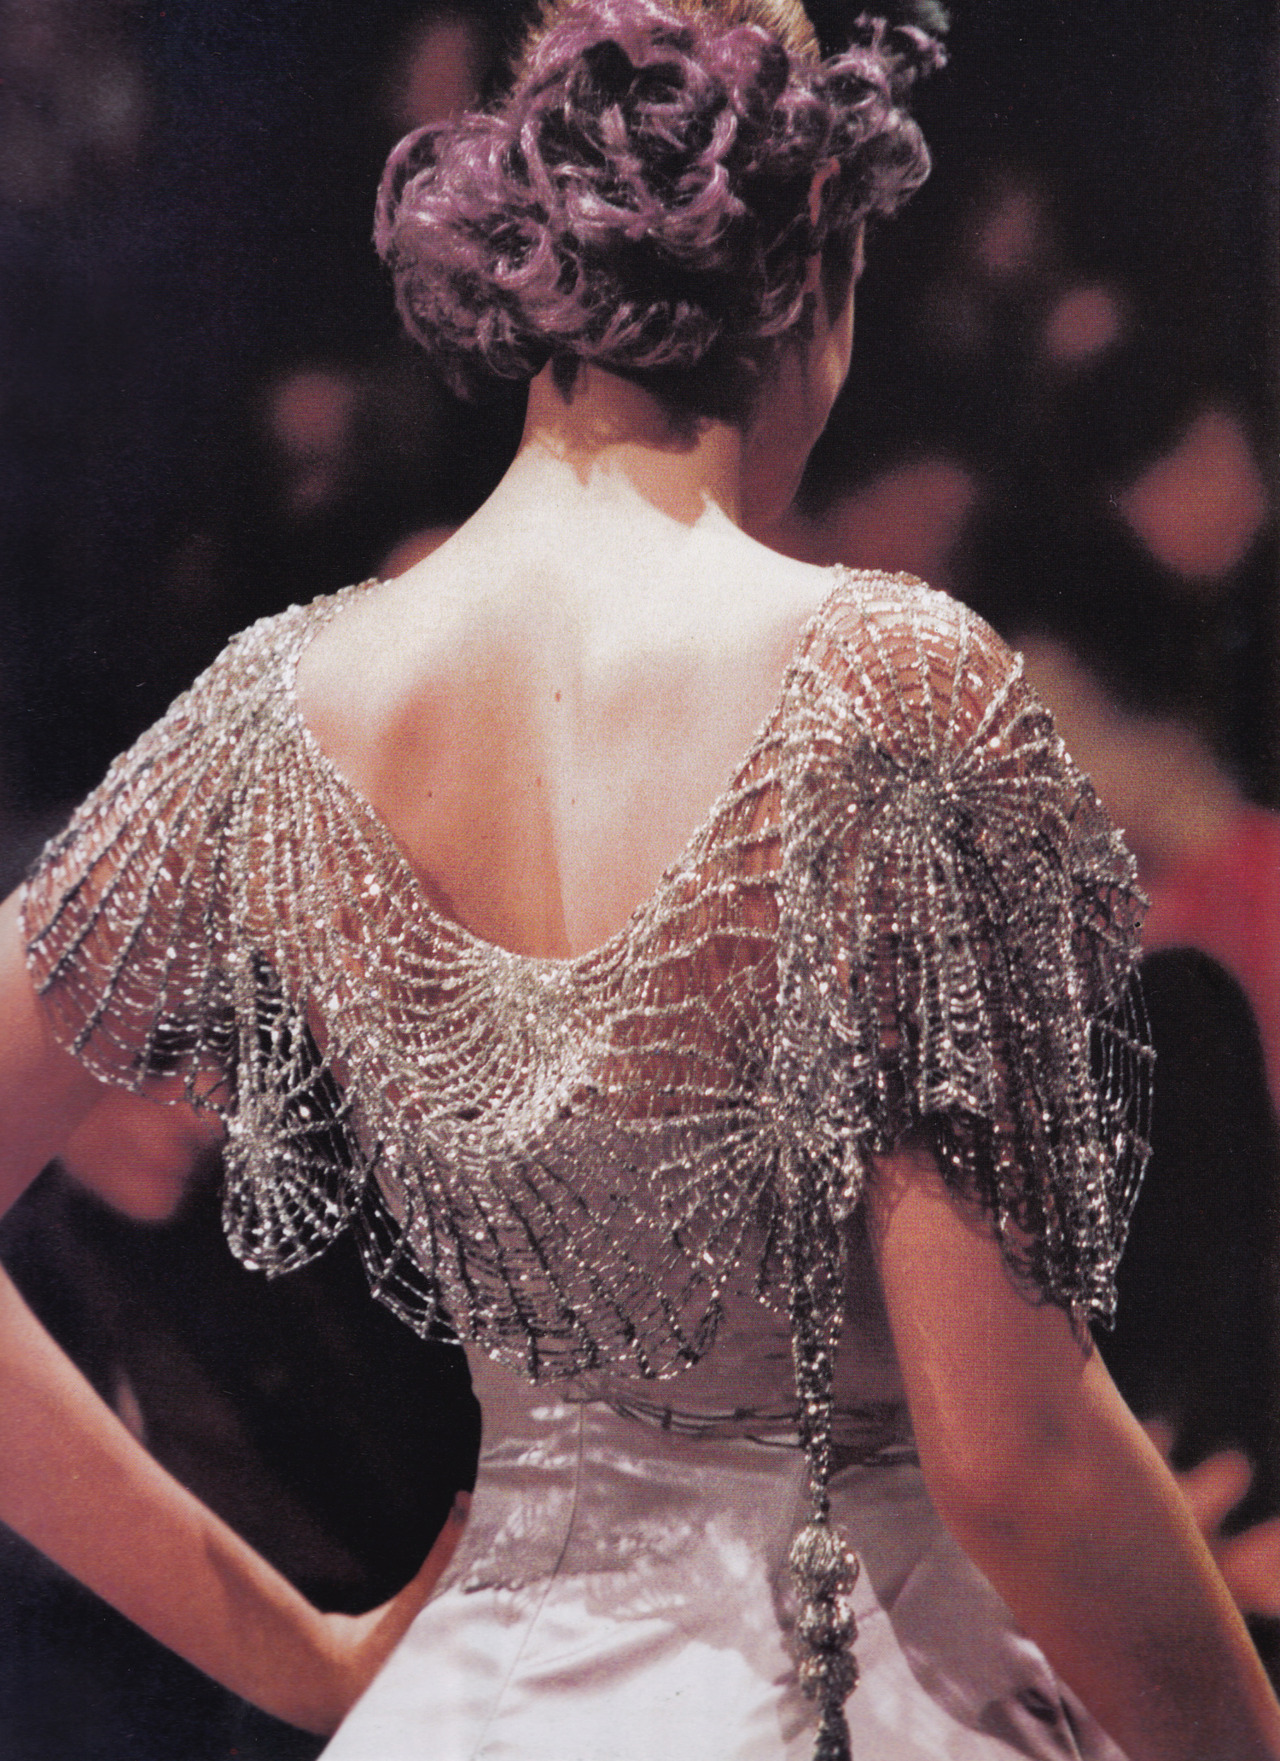 kisses-sweeter-than-wine:  Givenchy Haute Couture by John Galliano SpringSummer 1996 photographed by B. Pellerin